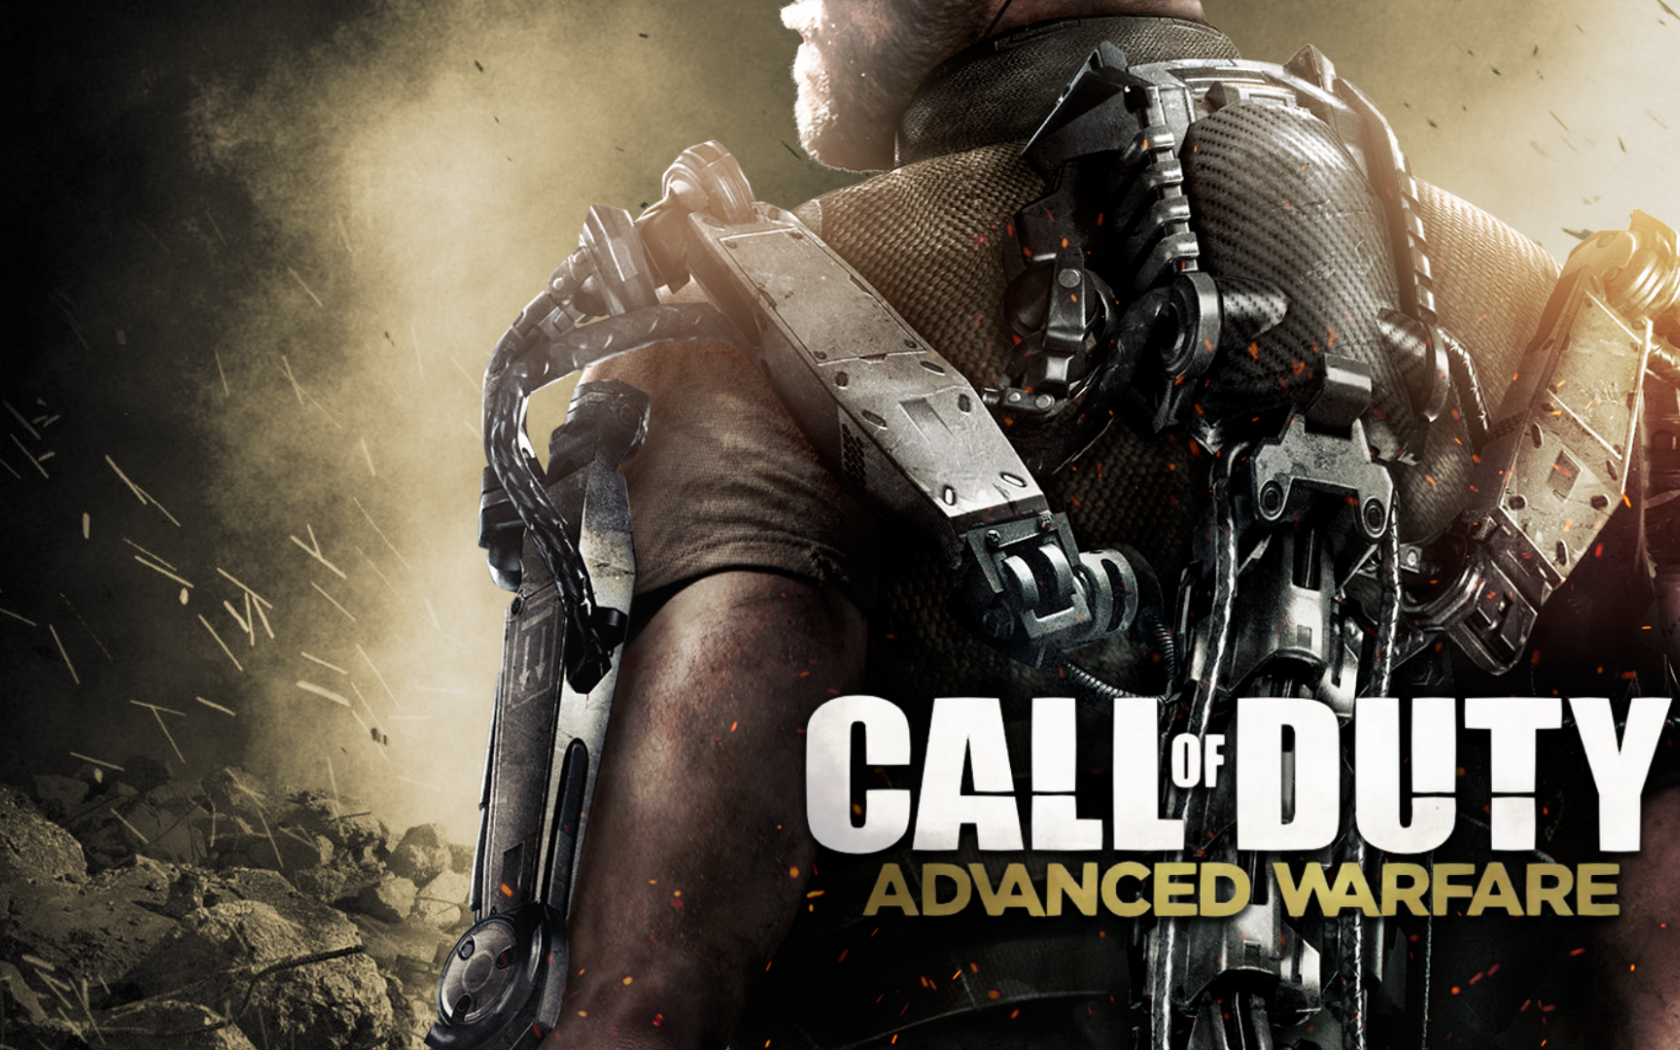 Free Download Aw Cod Mobile Wallpapers 1920x1080 For Your